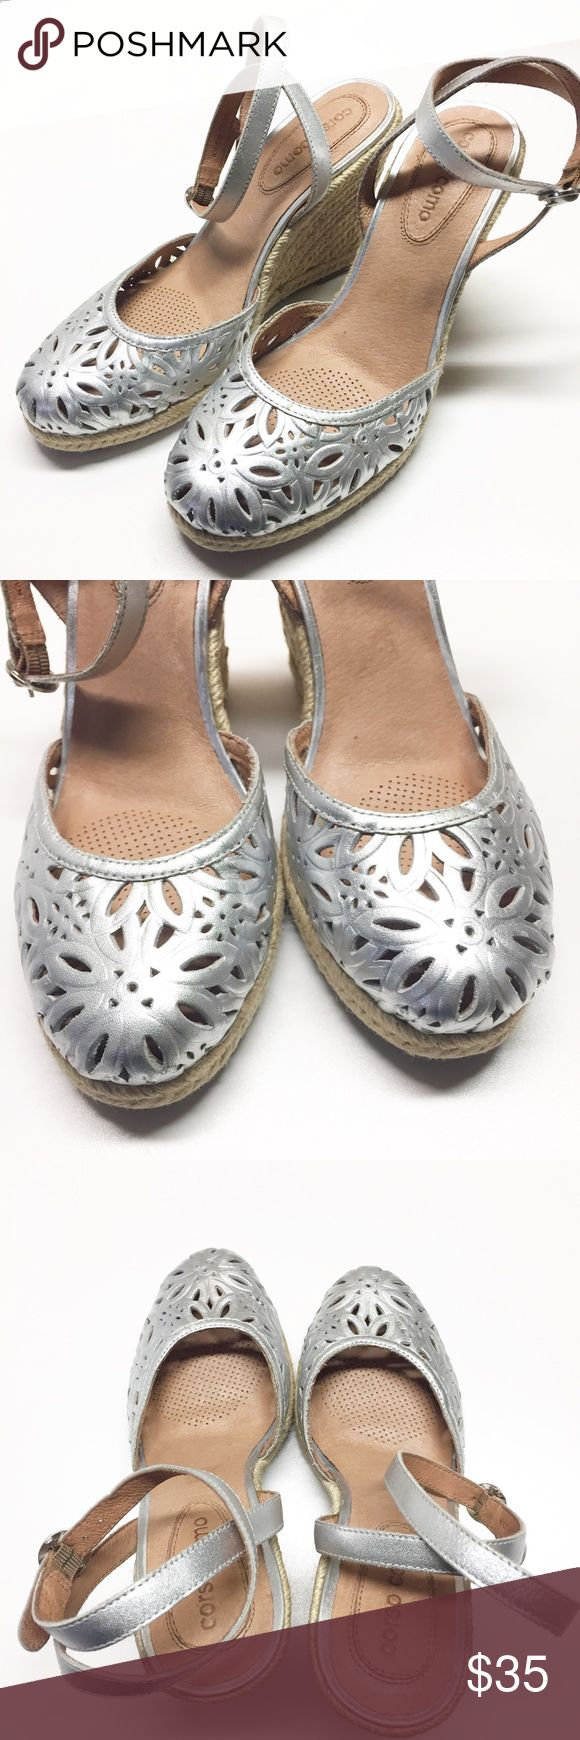 Corso Como Silver Espadrille Wedge Sandals 6.5 Corso Como Metallic silver Espadrilles wedge sandals. Size 6.5. EUC, very gently worn. Laser cut Floral pattern wrap around ankle strap. Clean foot beds. Corso Como Shoes Espadrilles